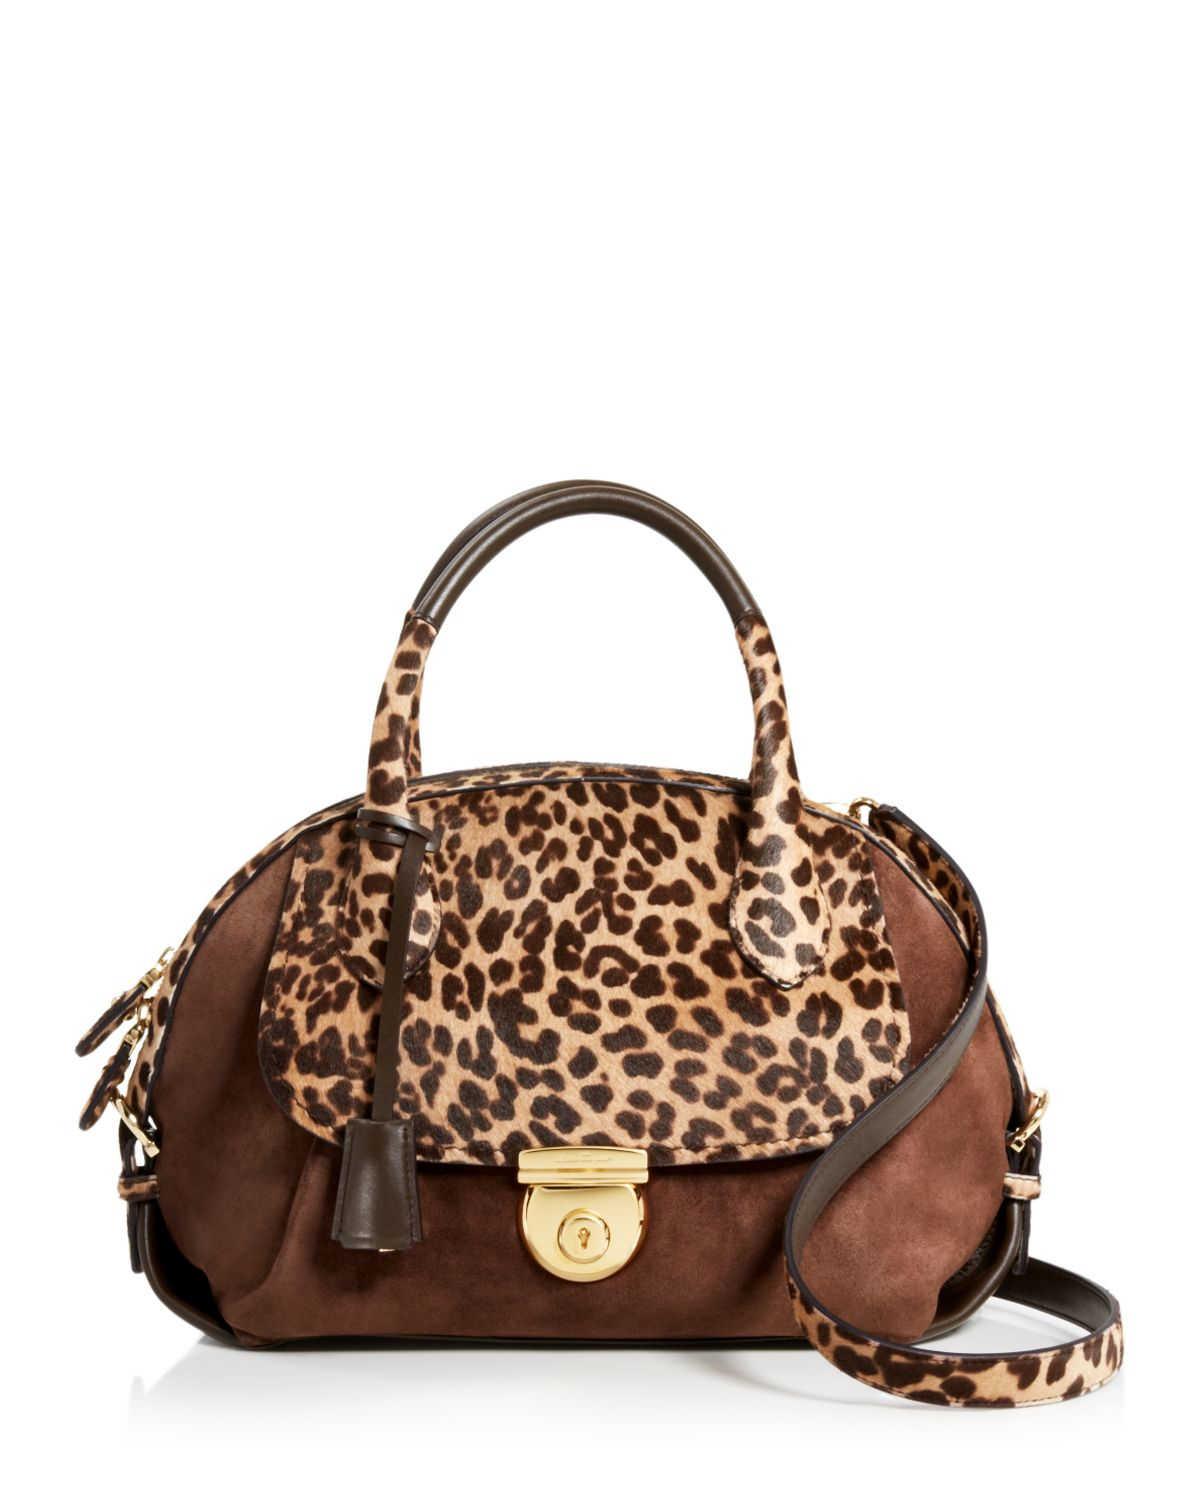 a6bbc517fb07 Lyst - Ferragamo Fiamma Medium Leopard Calf Hair Satchel